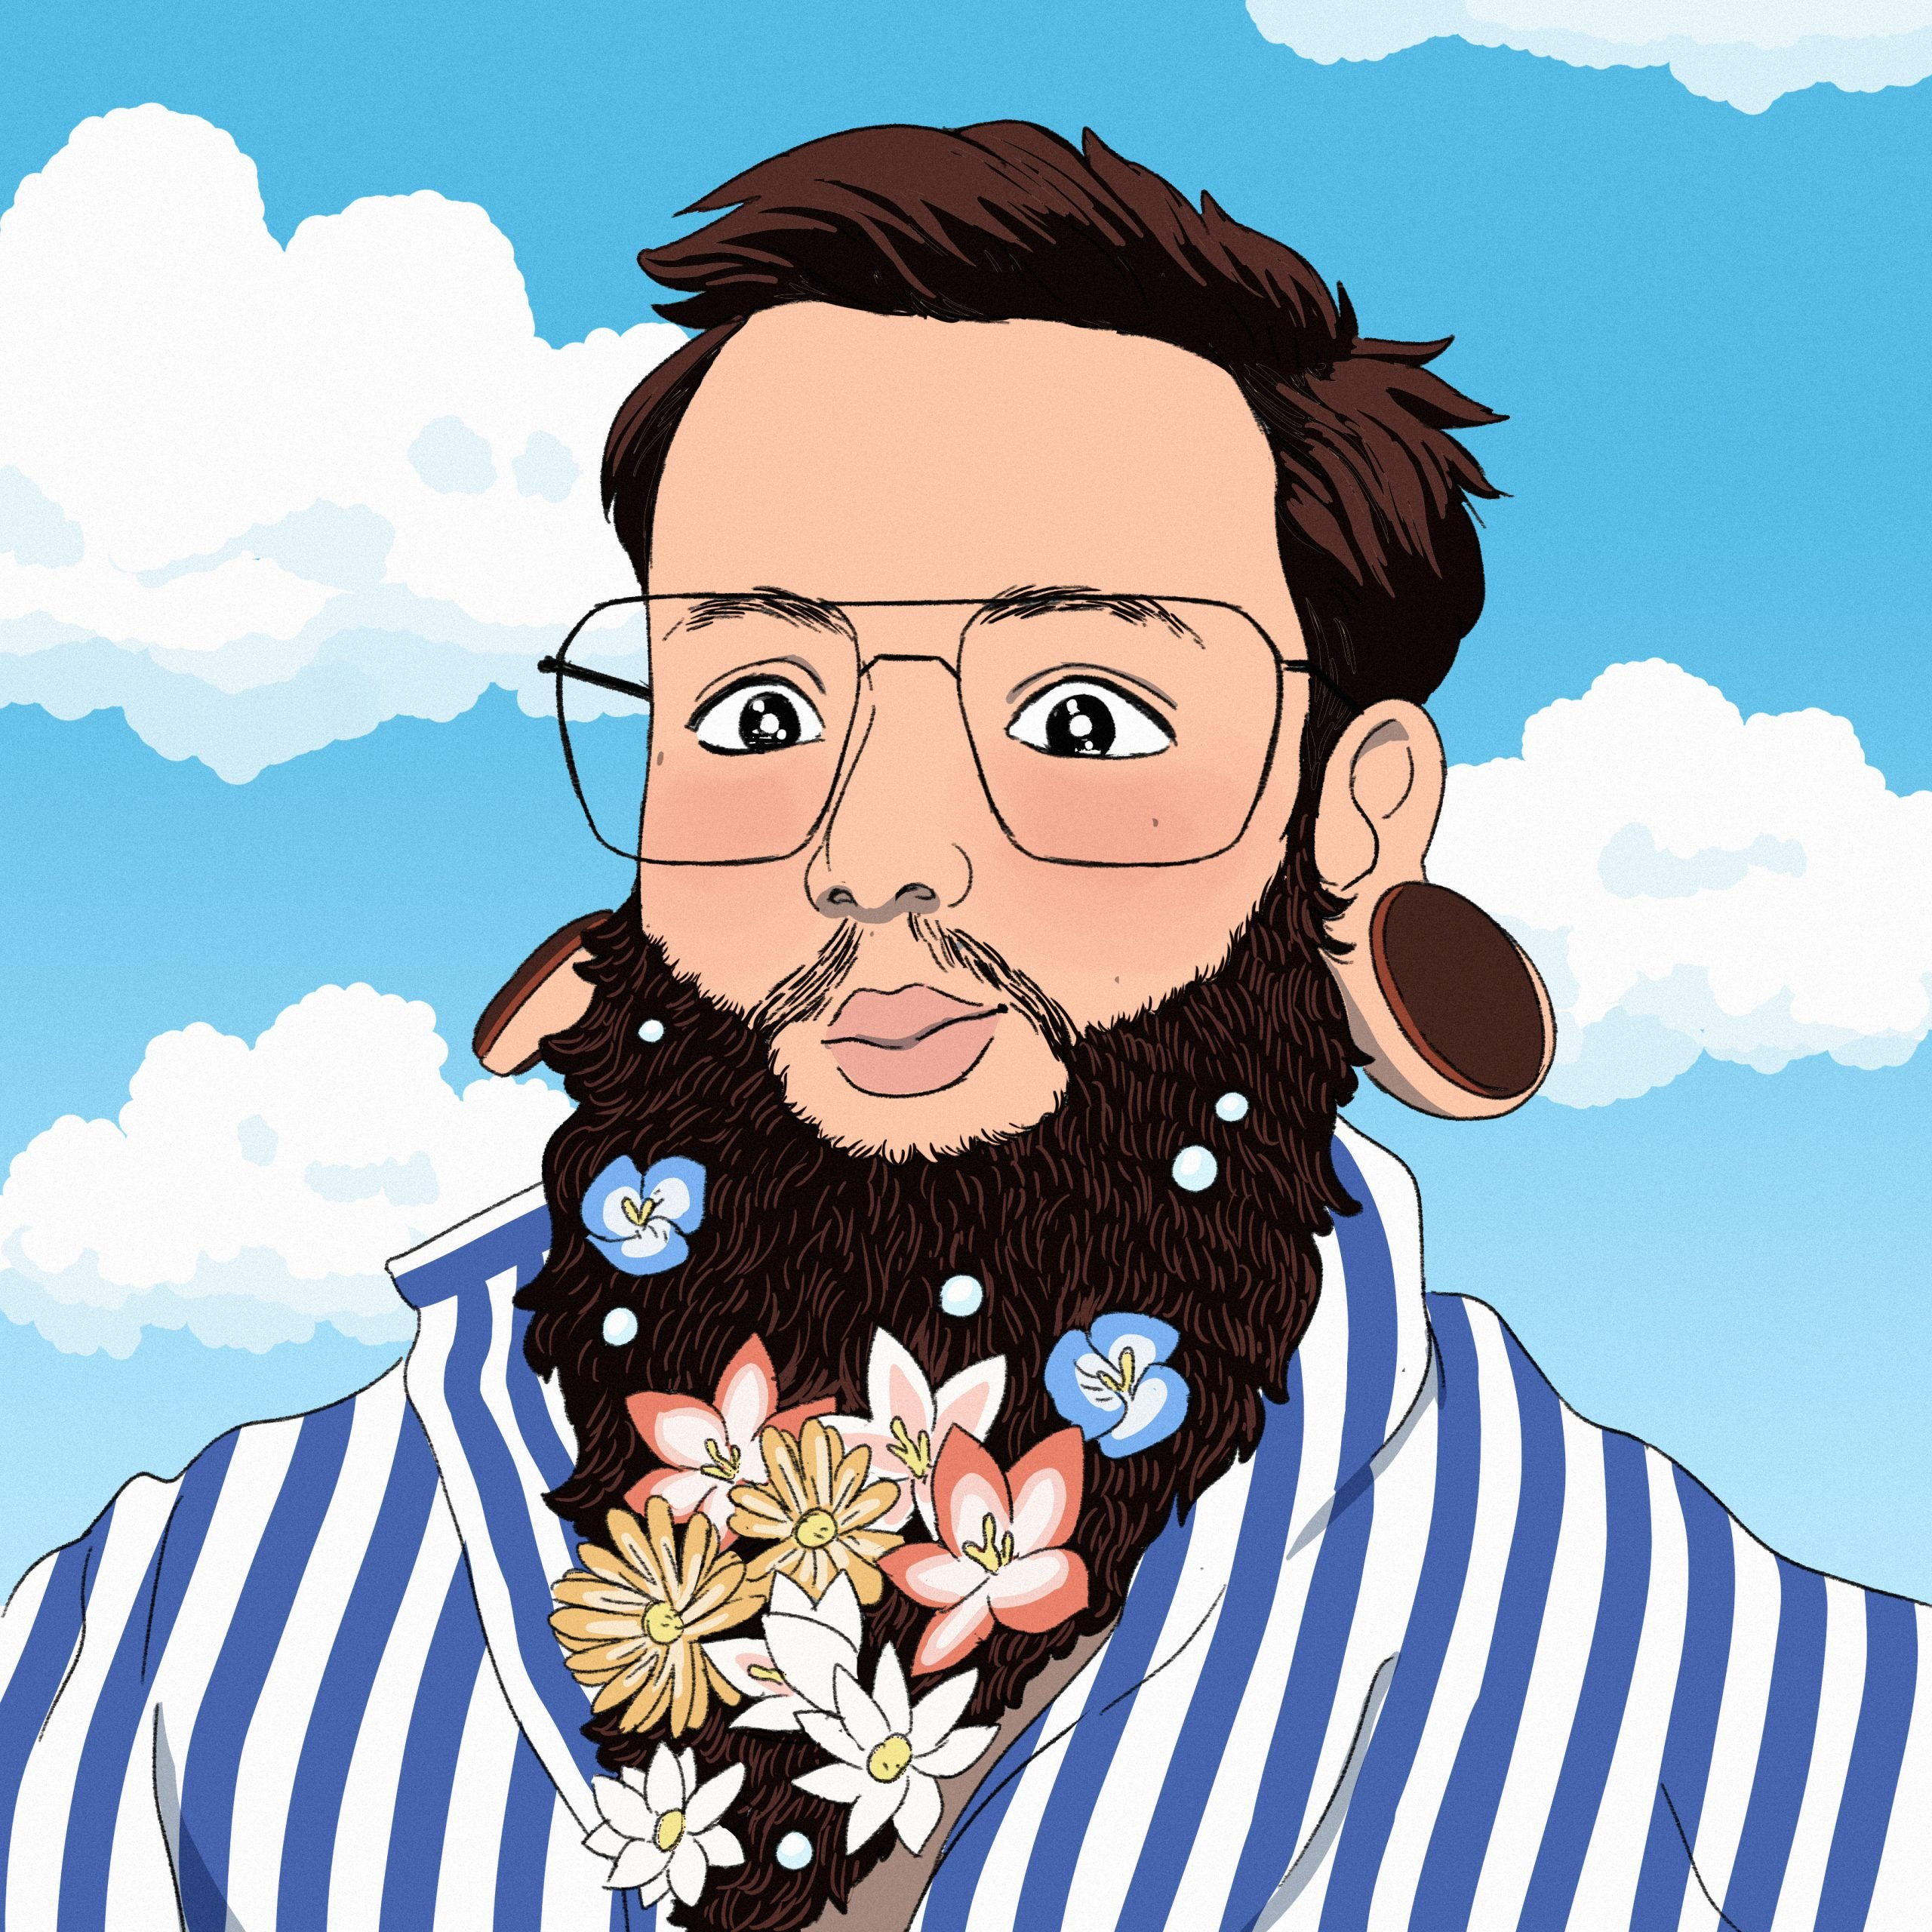 Illustrated Portrait of Peter Oswald with flowers in his beard in front of a blue sky with fluffy clouds